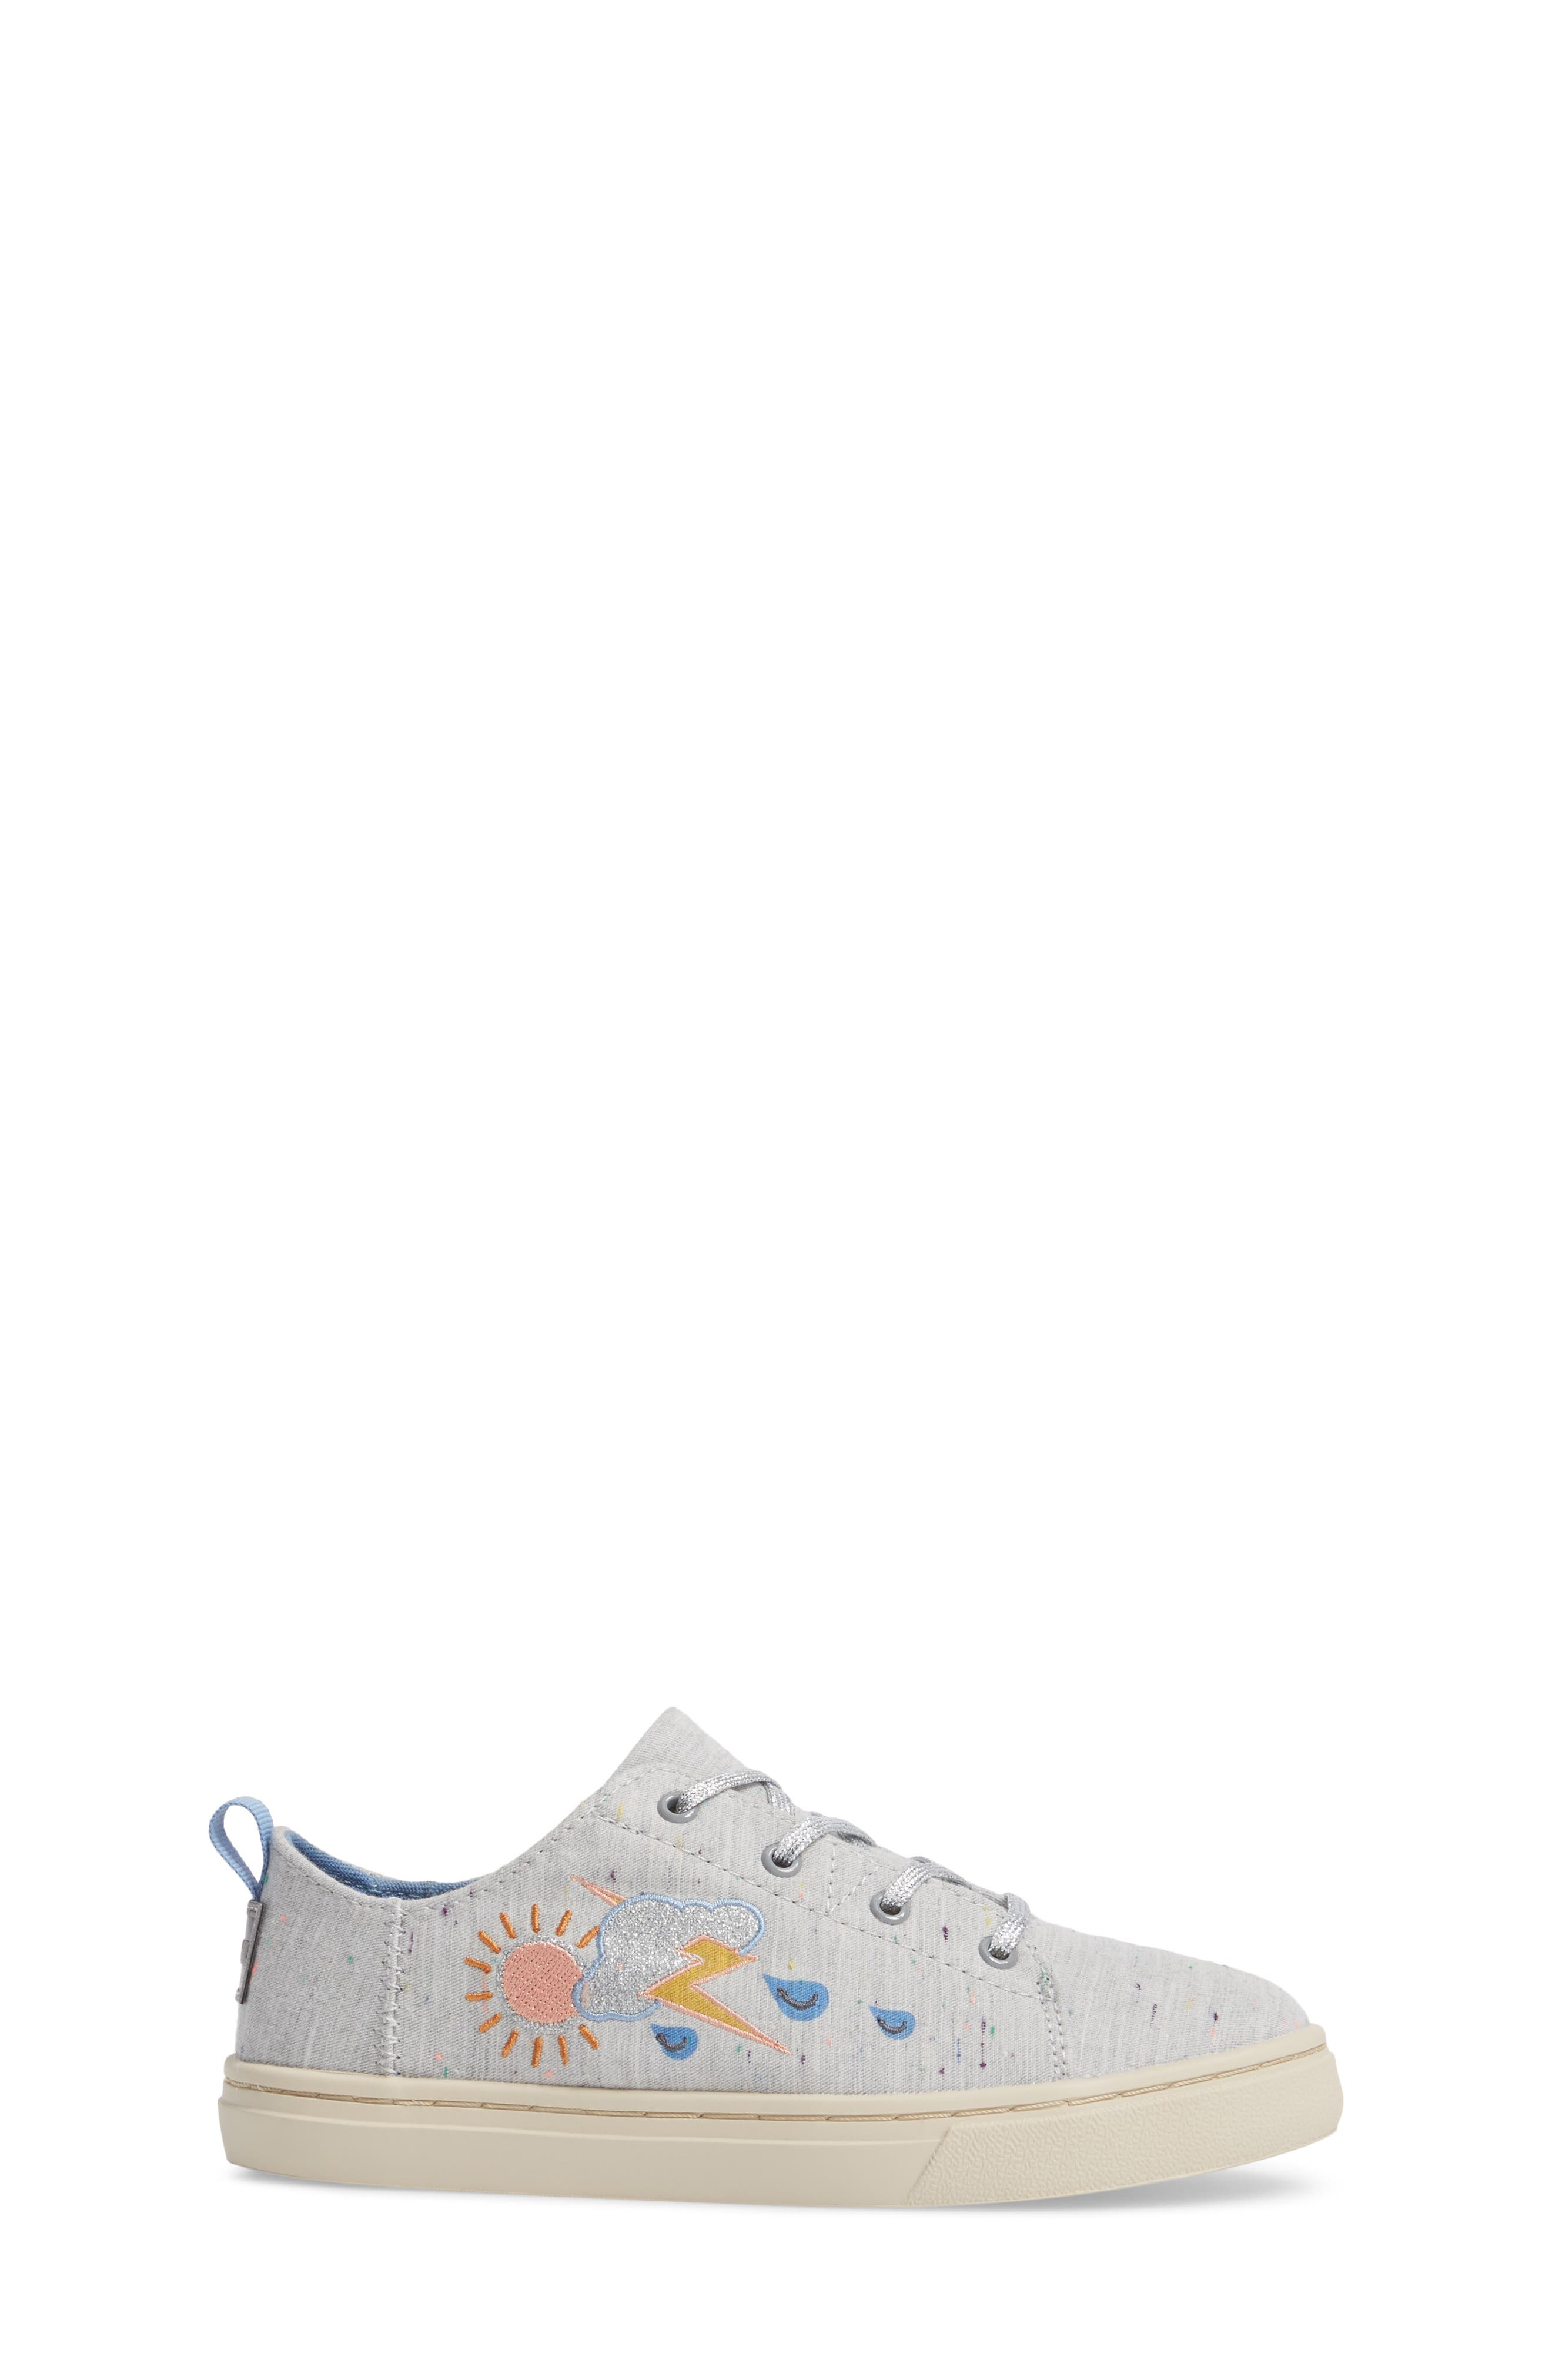 Lenny Embroidered Sneaker,                             Alternate thumbnail 3, color,                             Grey Multi Drizzly Weather